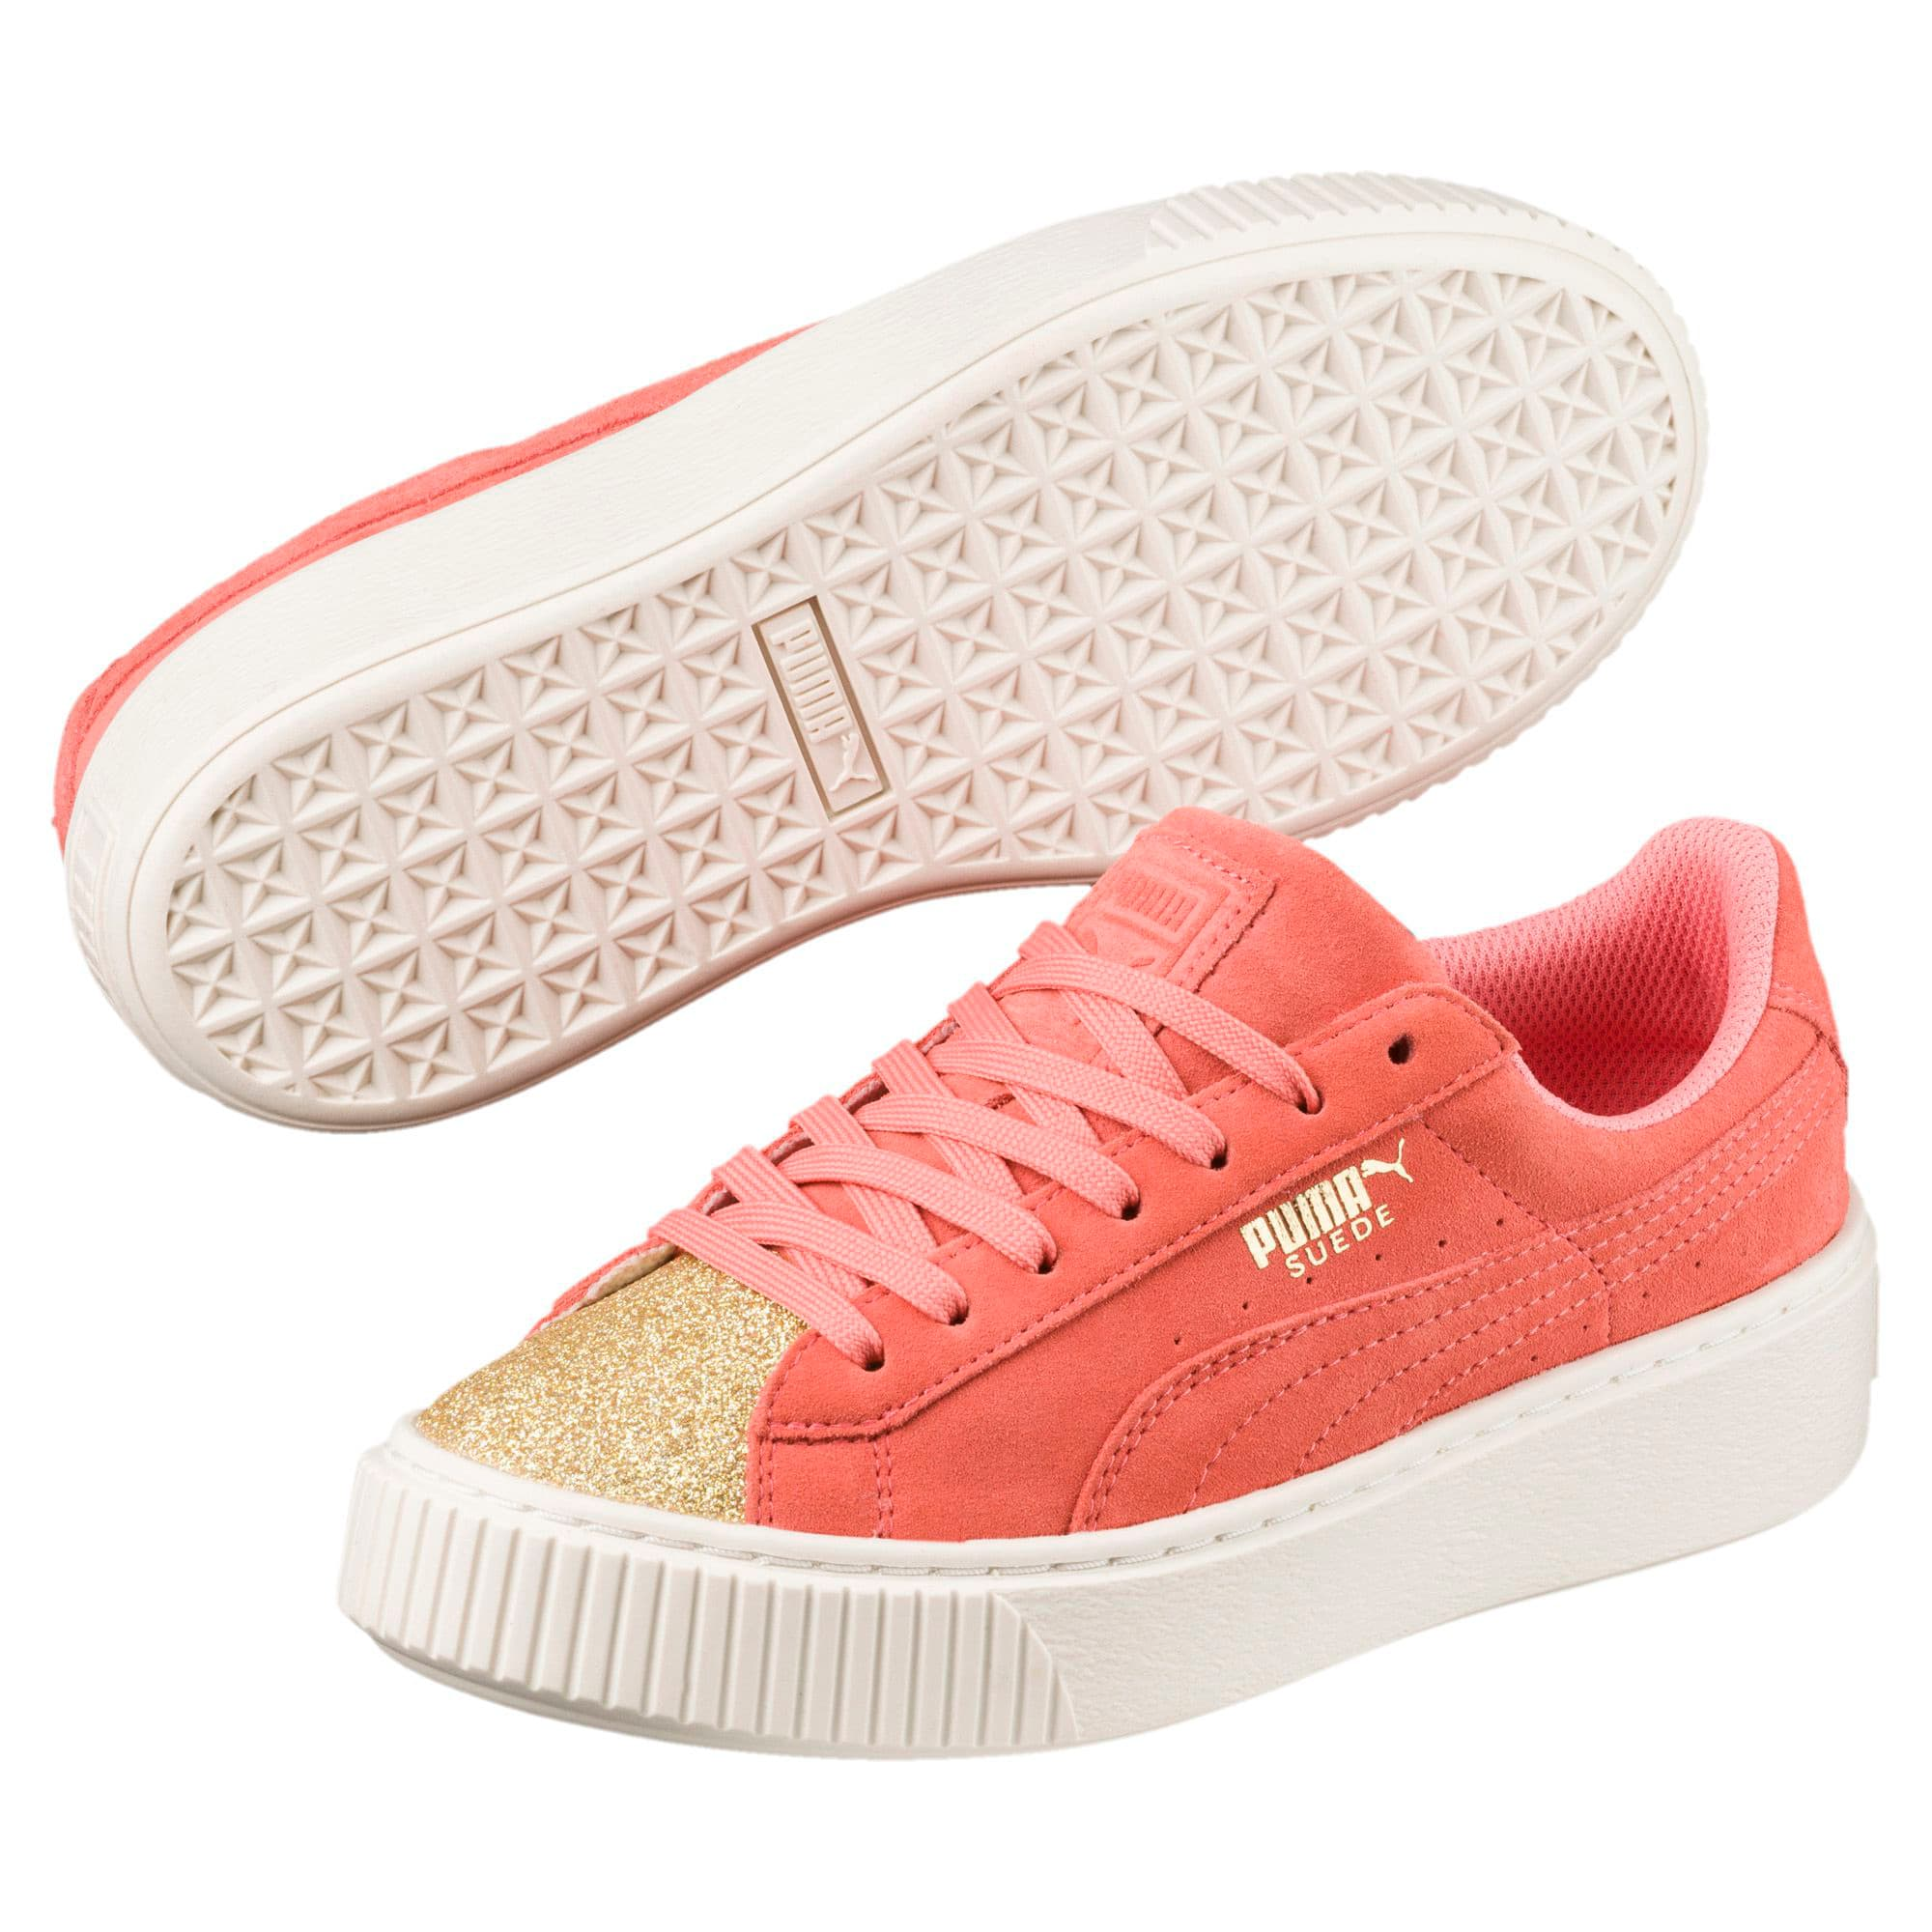 Thumbnail 1 of Suede Glam Girl's Sneakers JR, Puma Team Gold-Shell Pink, medium